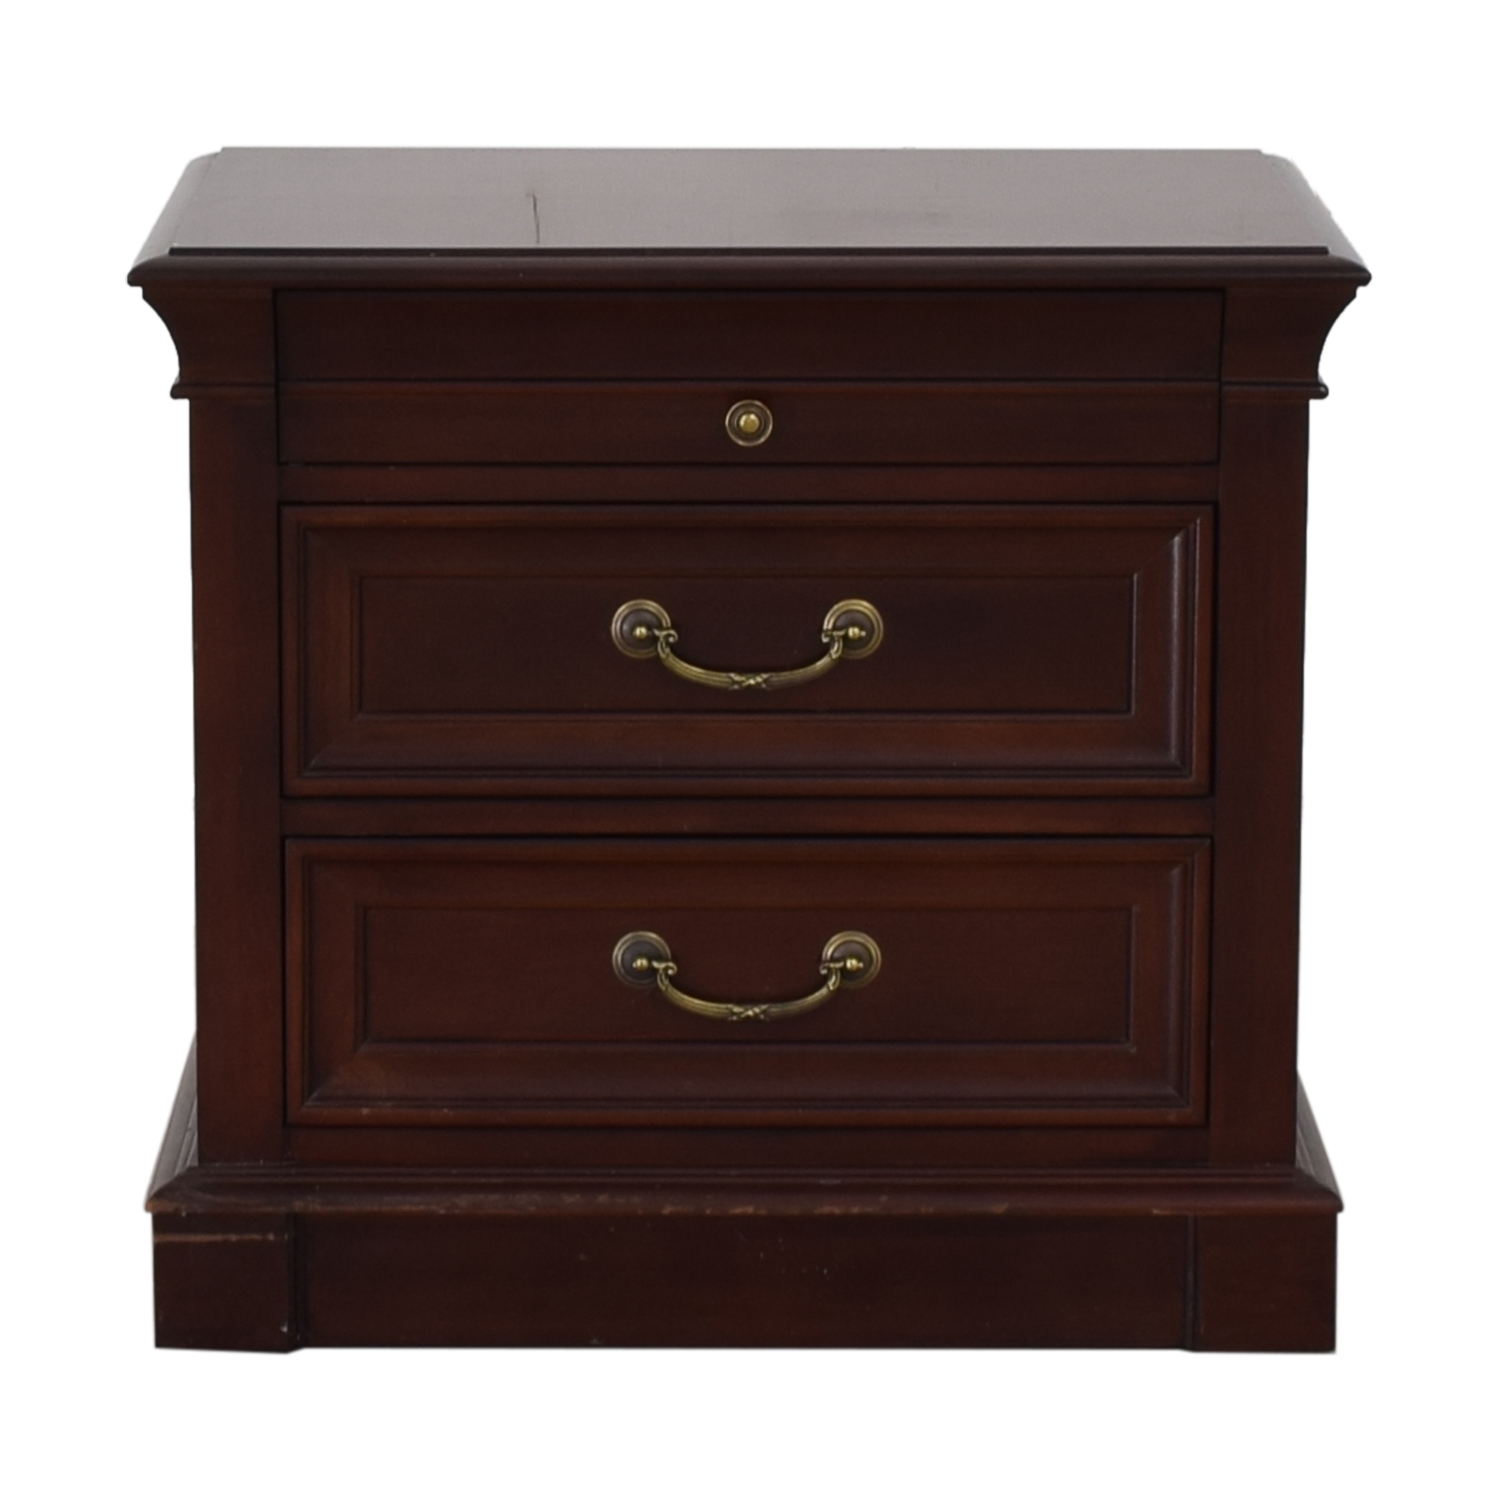 Ethan Allen Three-Drawer Nightstand / Tables